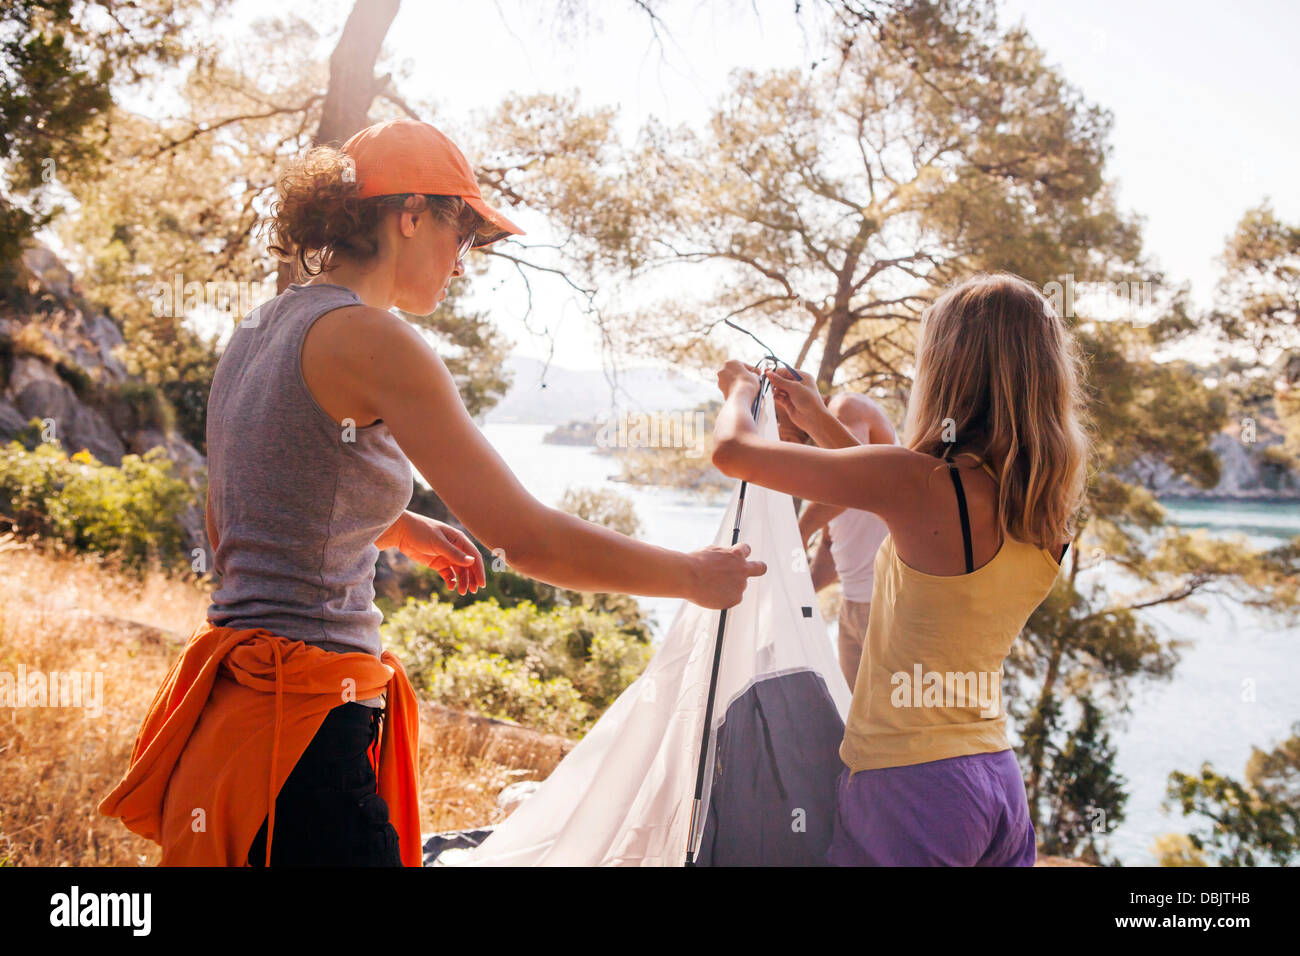 Croatia, Dalmatia, Family holidays on camping site, pitching the tent - Stock Image